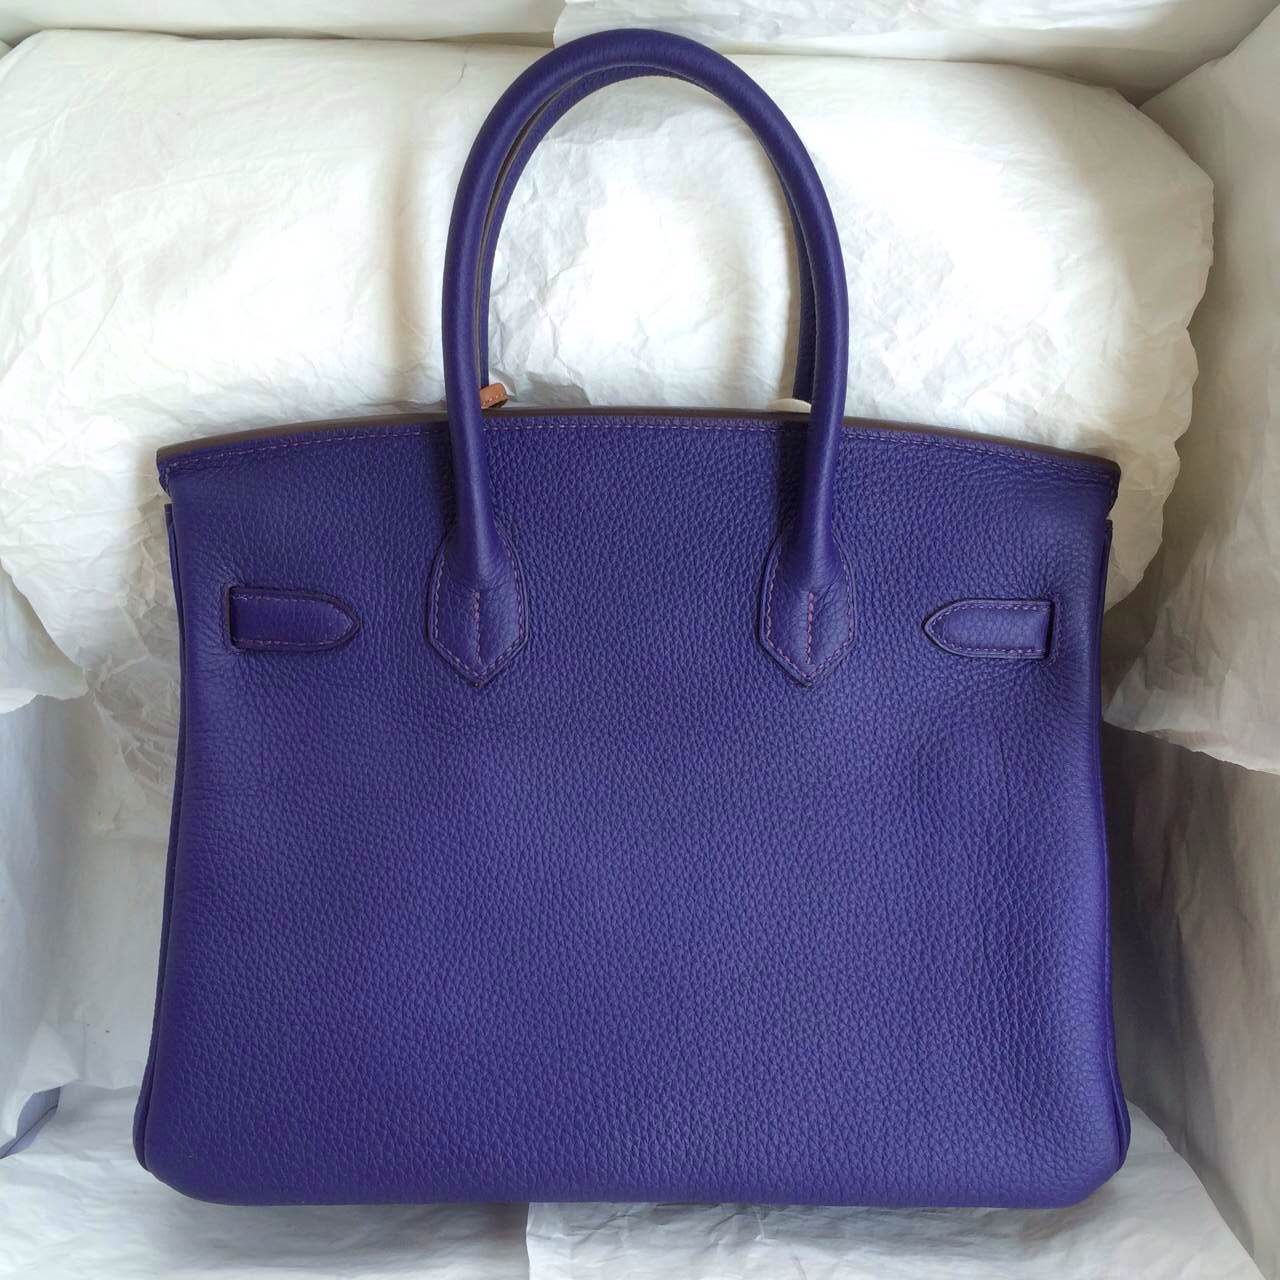 9K Iris Purple Hermes Birkin Handbags 30cm France Togo Leather \u2014 HEMA